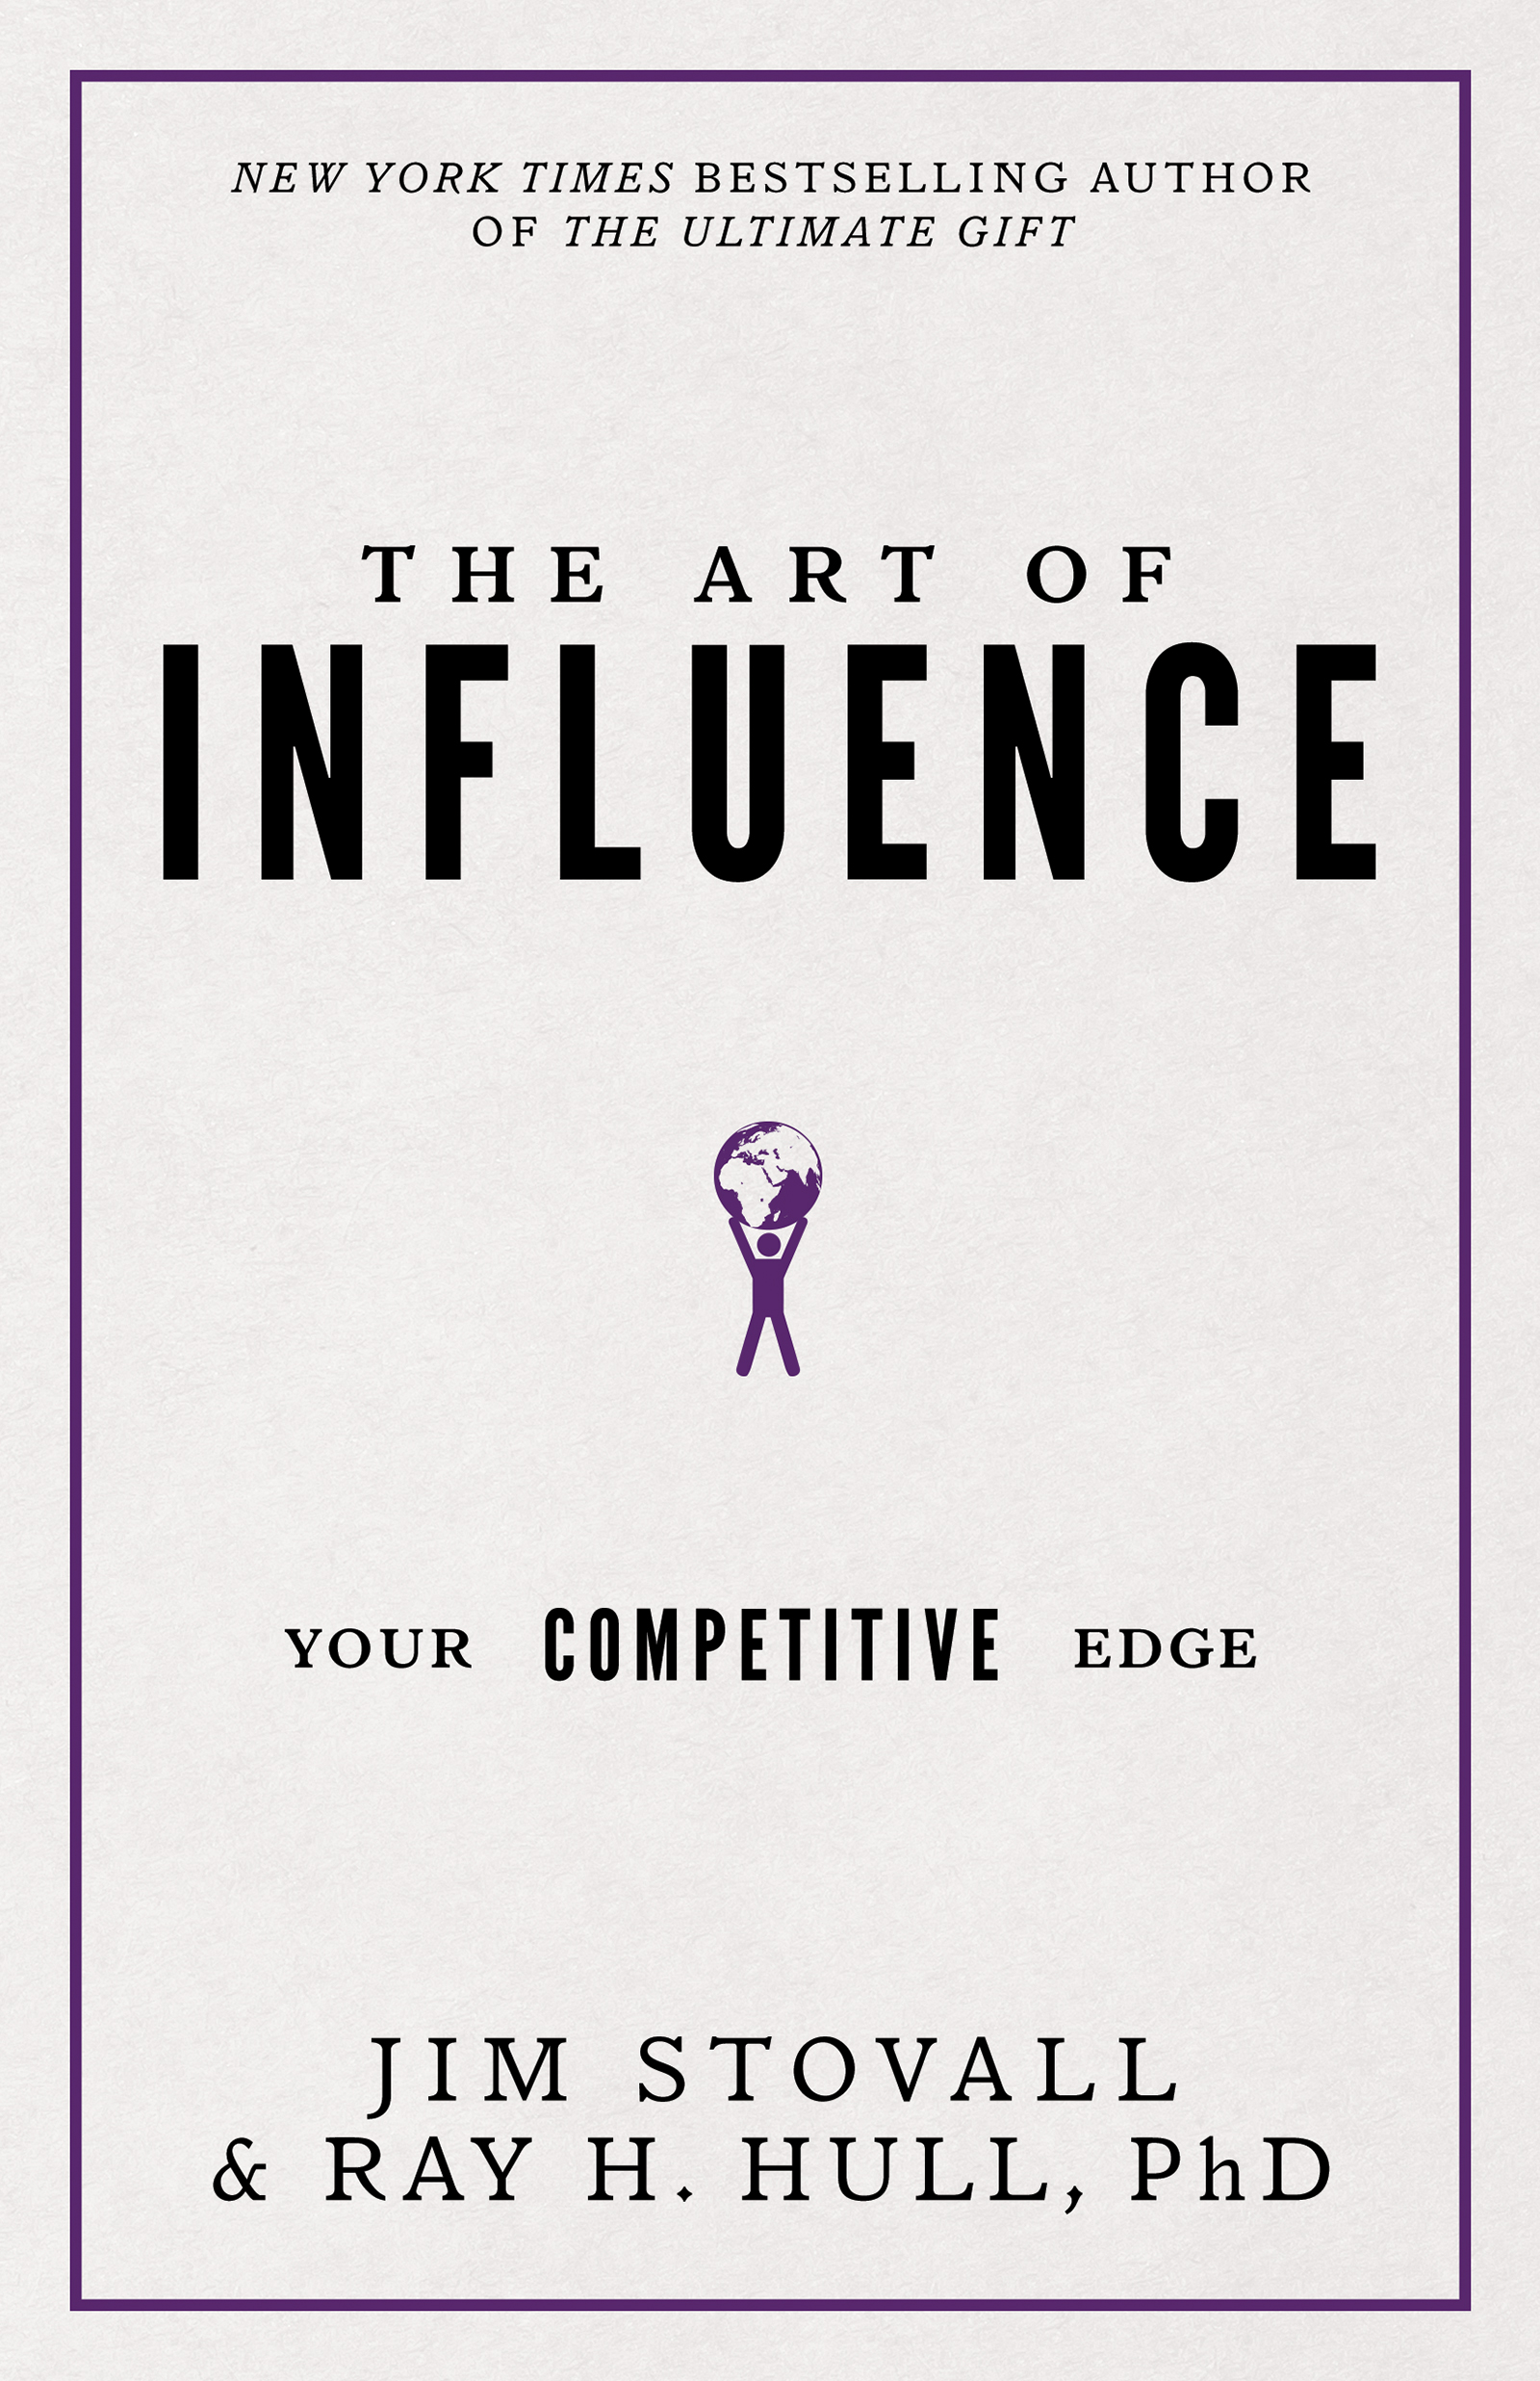 The Art of Influence - Jim Stovall & Ray H. Hull, PHD